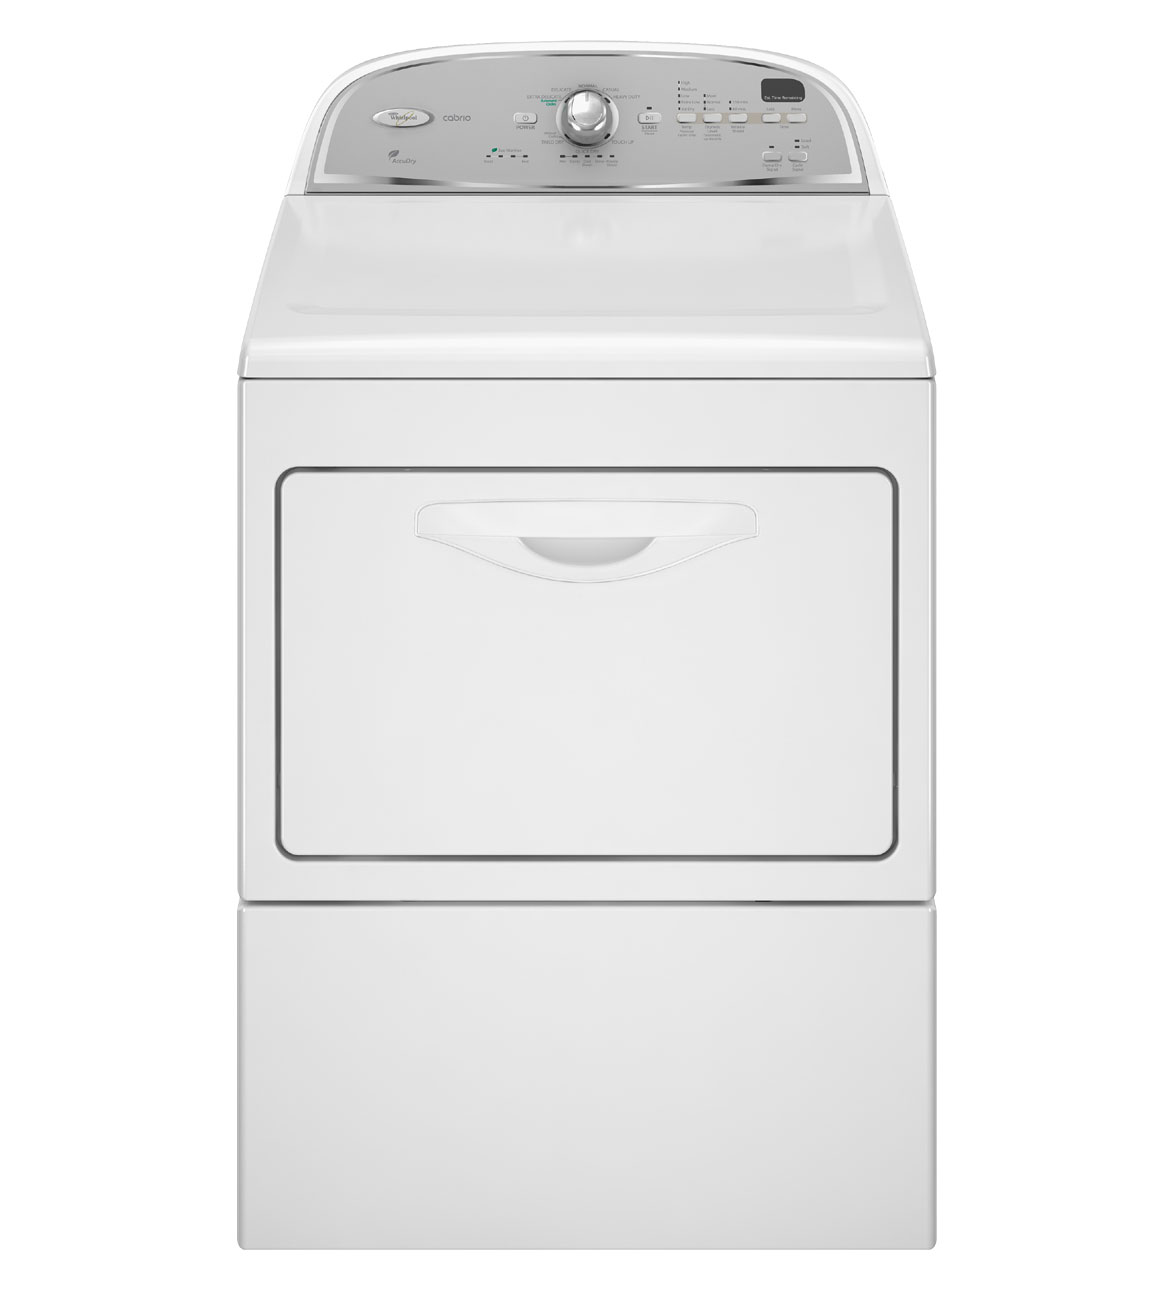 Review of Whirlpool Cabrio 7.4 cu. ft. Electric Dryer in Whi ...